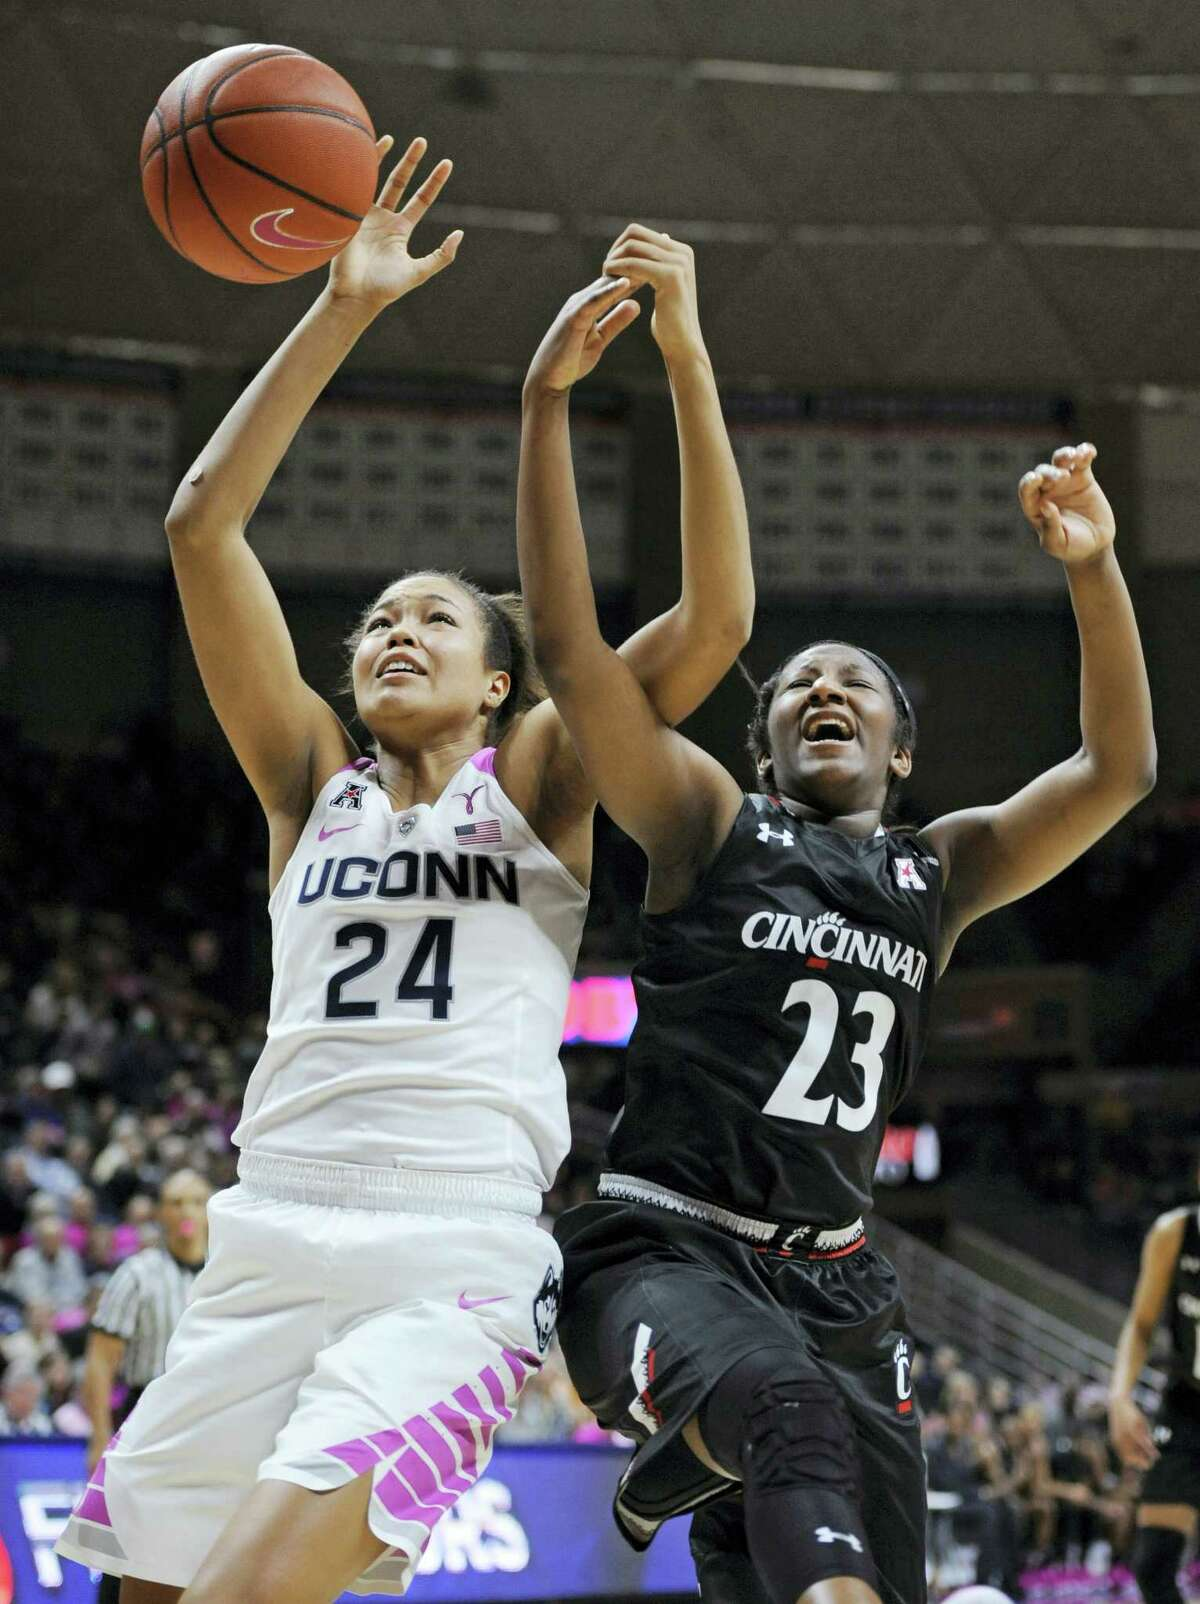 UConn's Napheesa Collier, left, and Cincinnati's Jasmine Whitfield reach for a rebound during the first half Wednesday in Storrs.